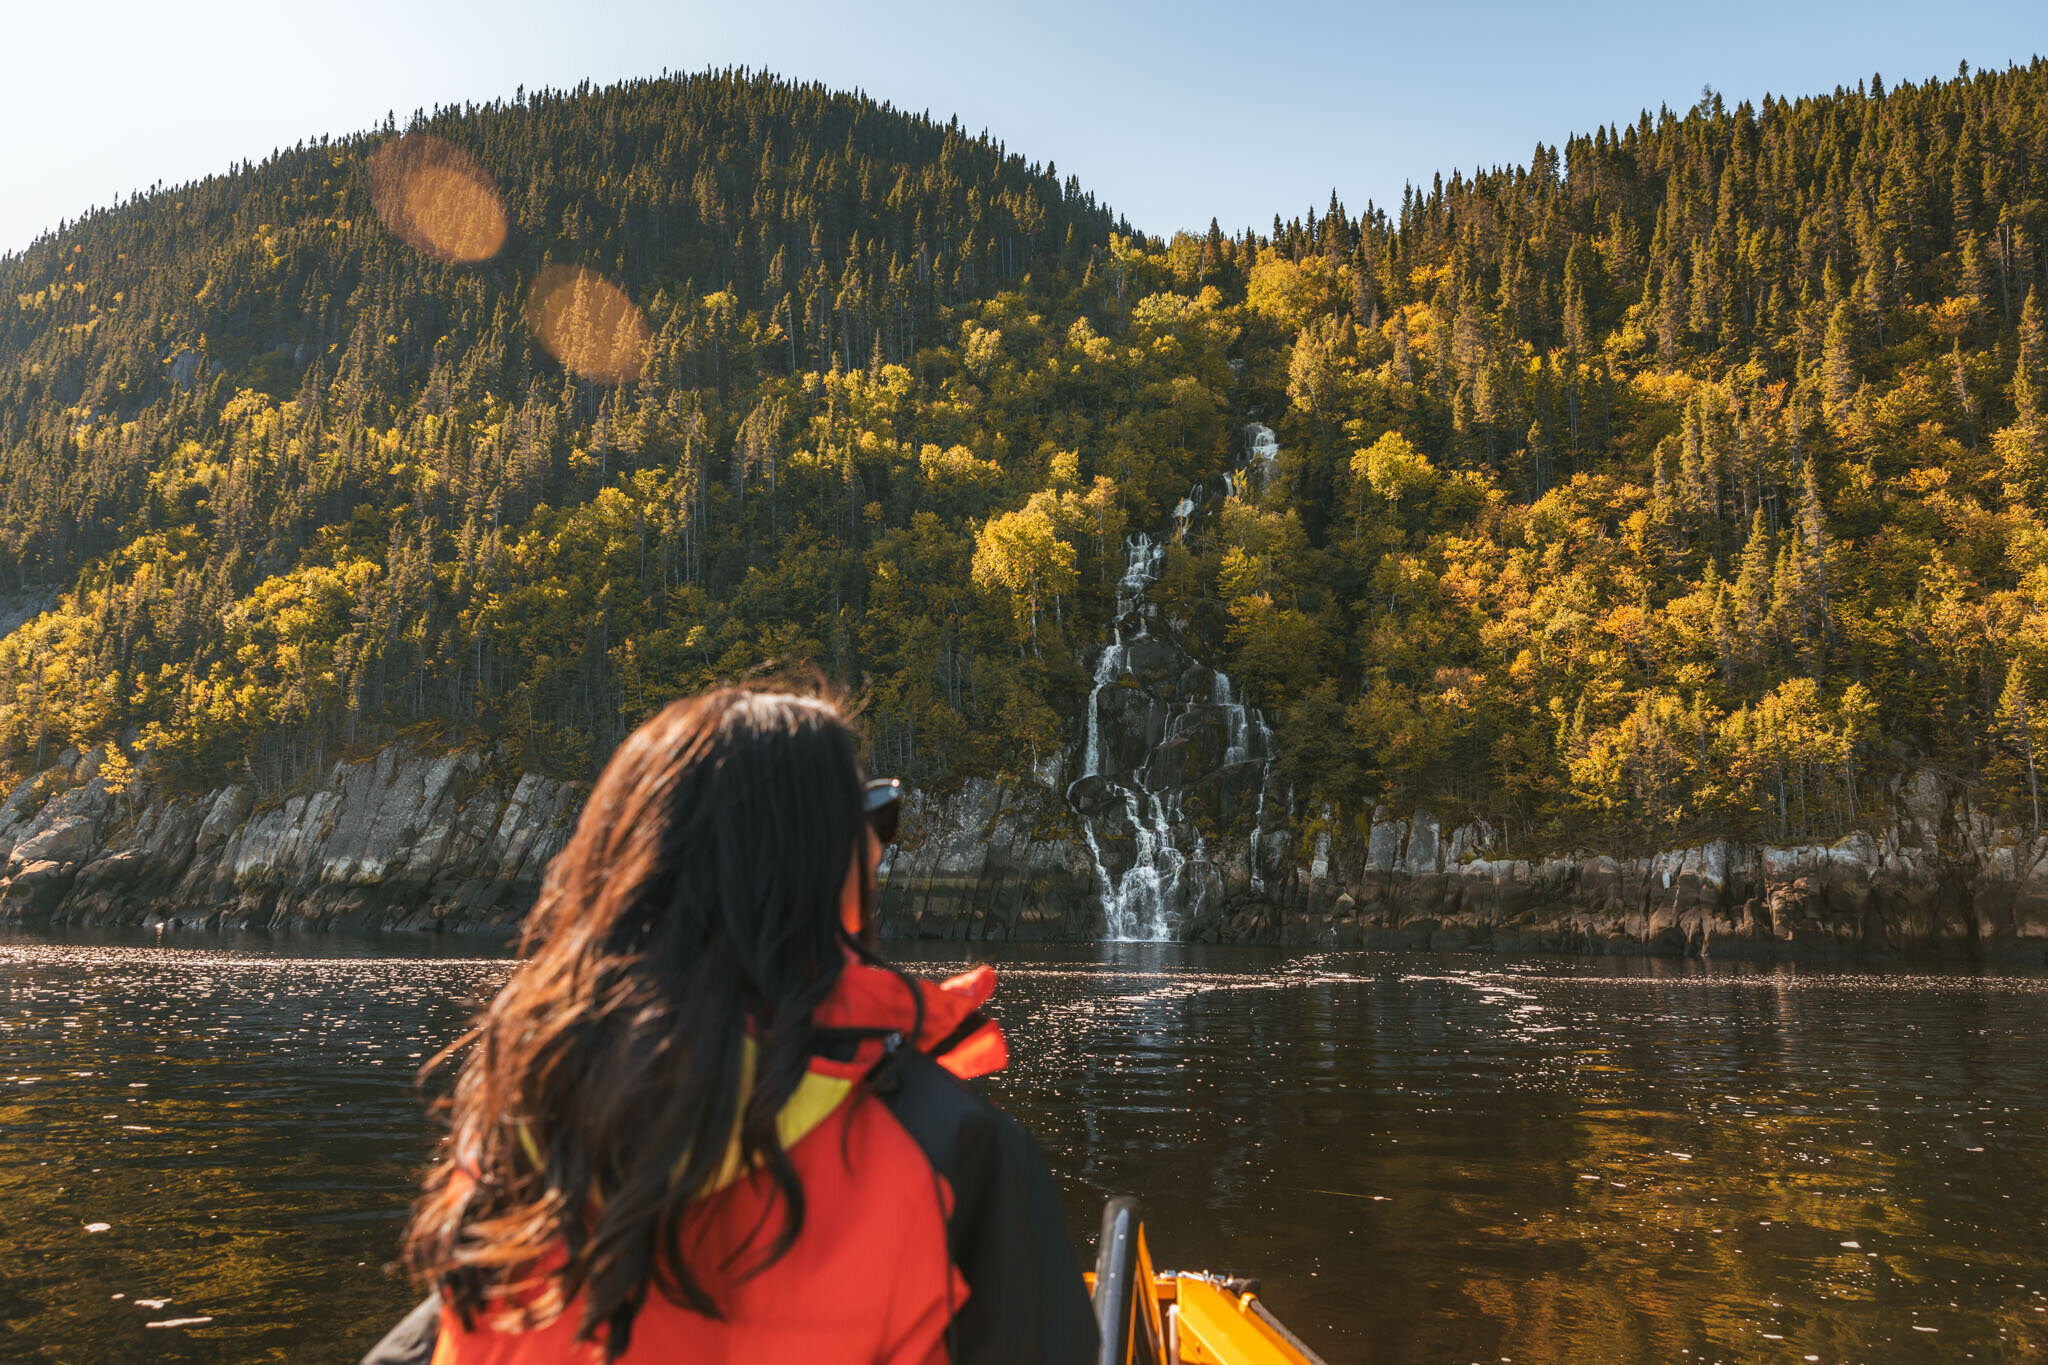 Saguenay Fjord zodiac tour // Cruise Review: 11-Day New England & Canada on the Seabourn Quest // #readysetjetset #cruise #luxury #travel #cruising #canada